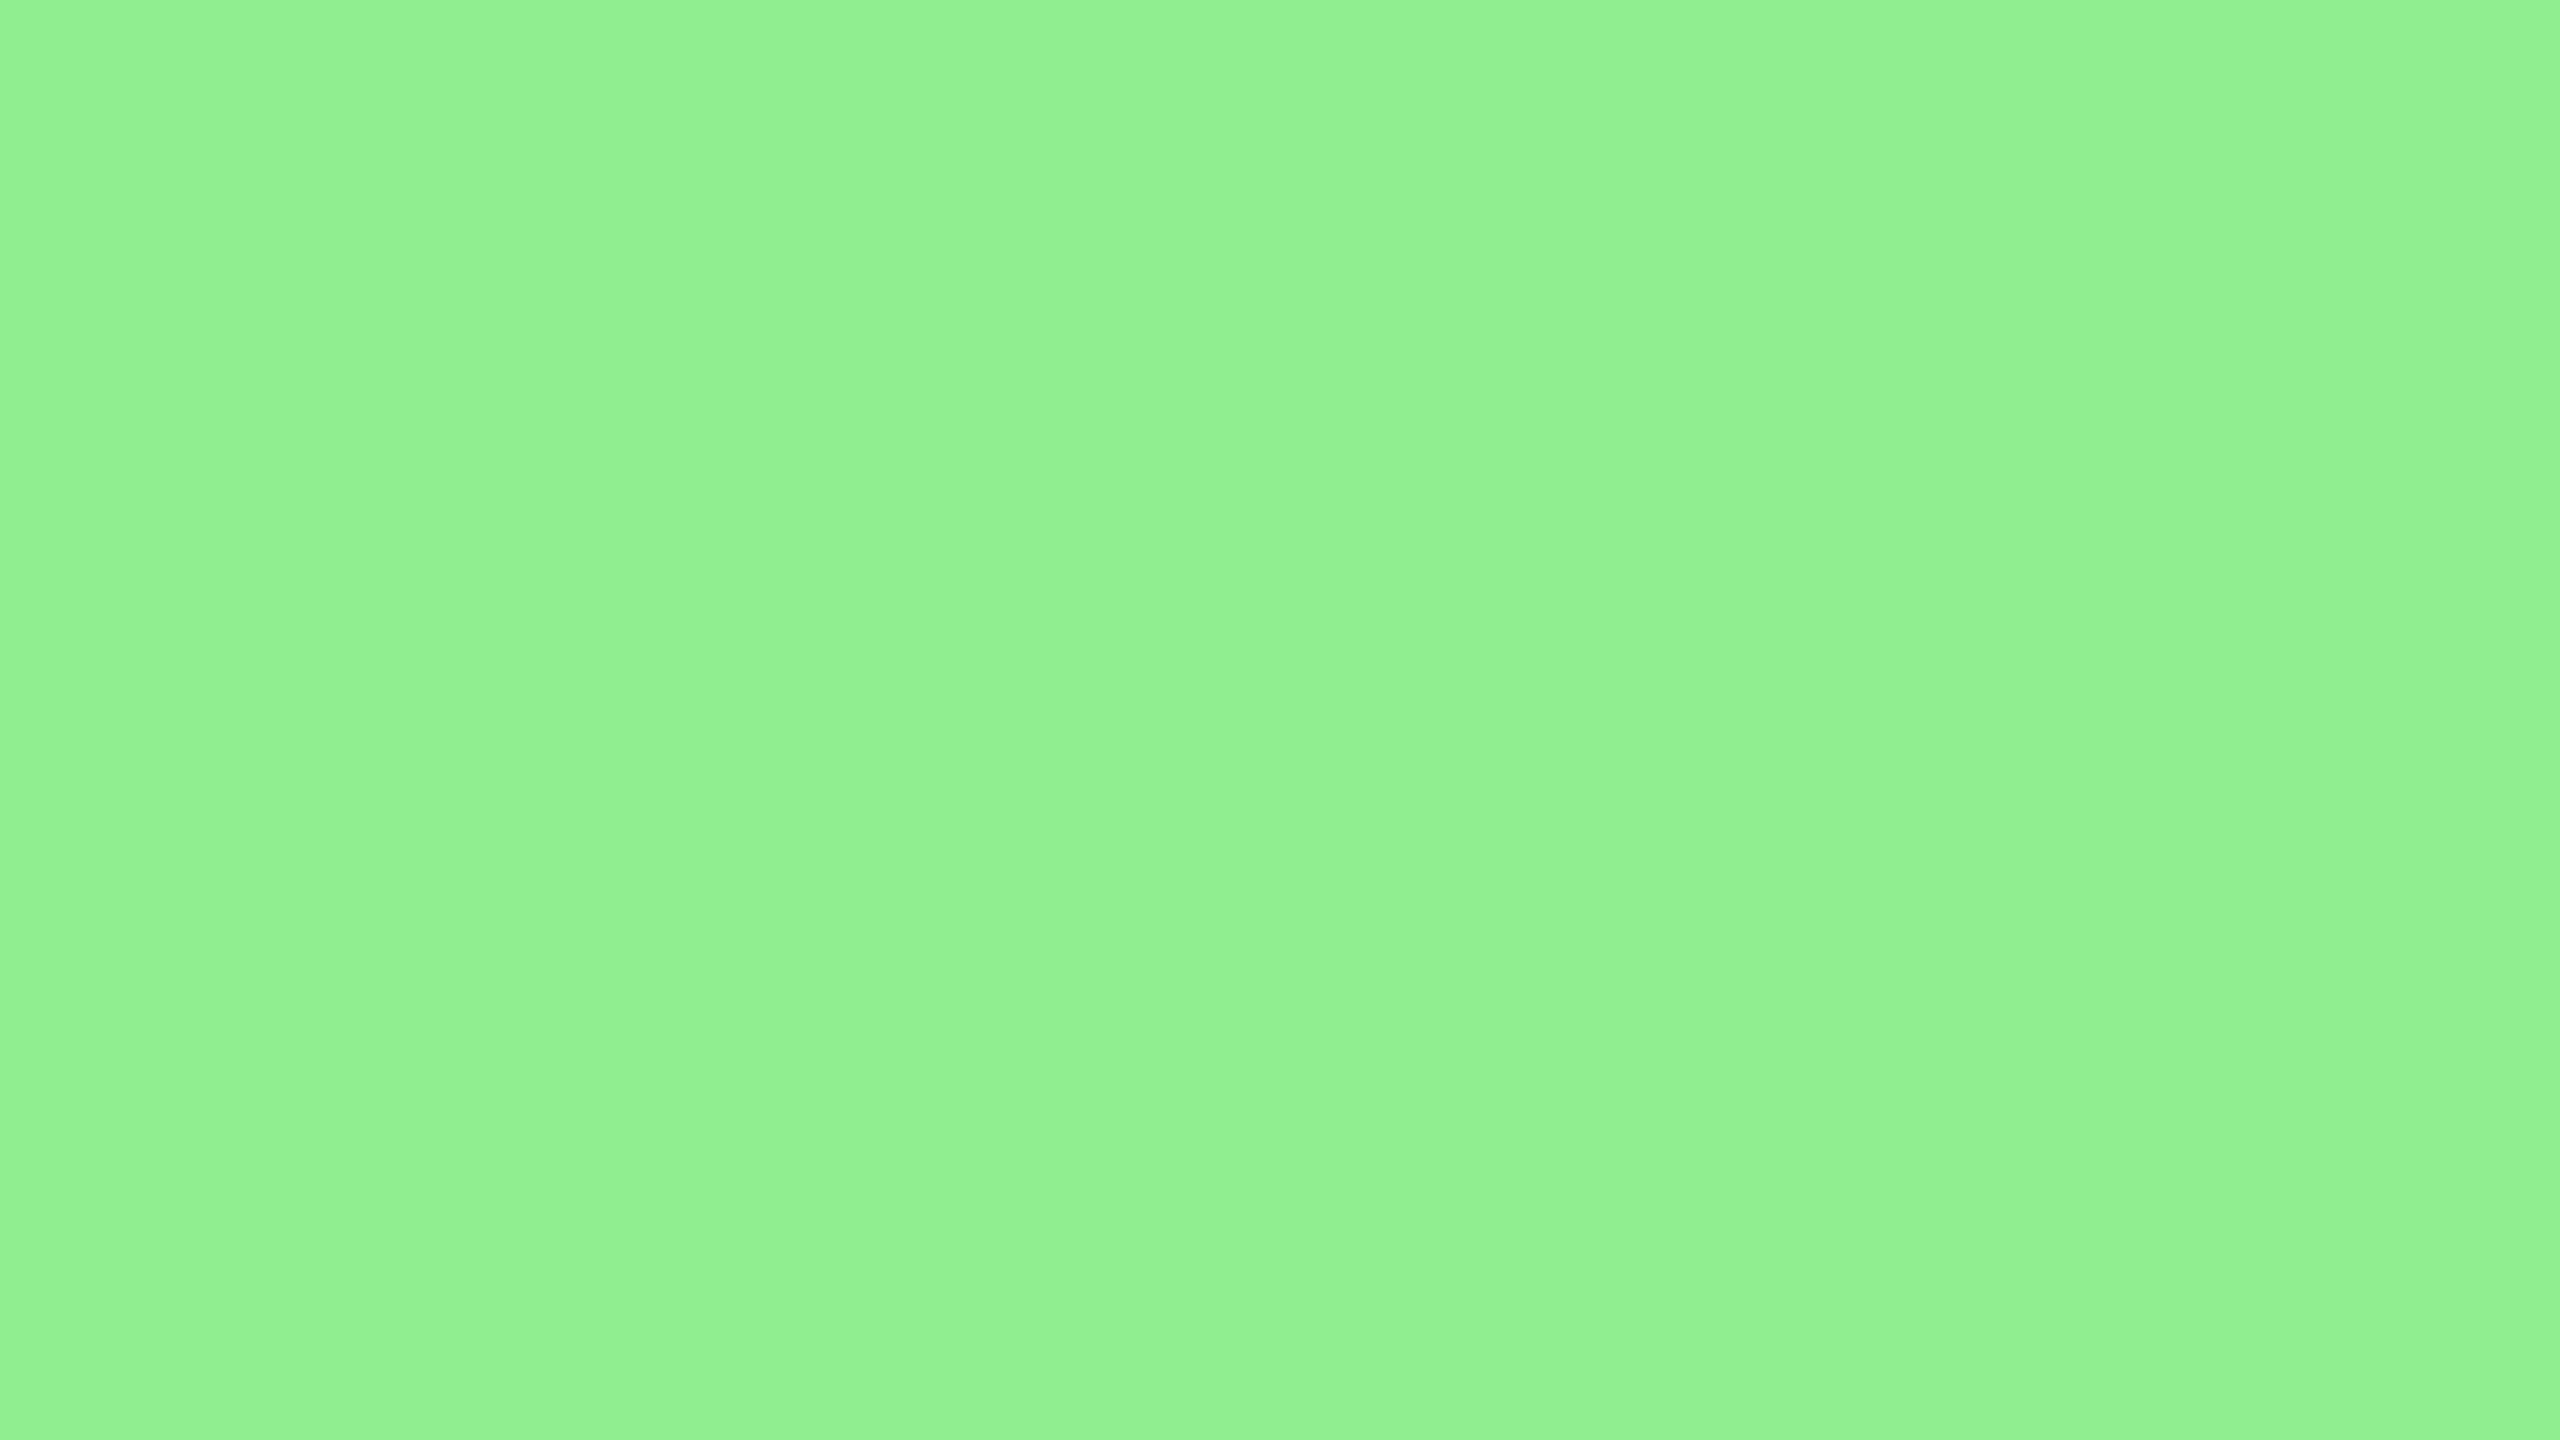 2560x1440 Light Green Solid Color Background